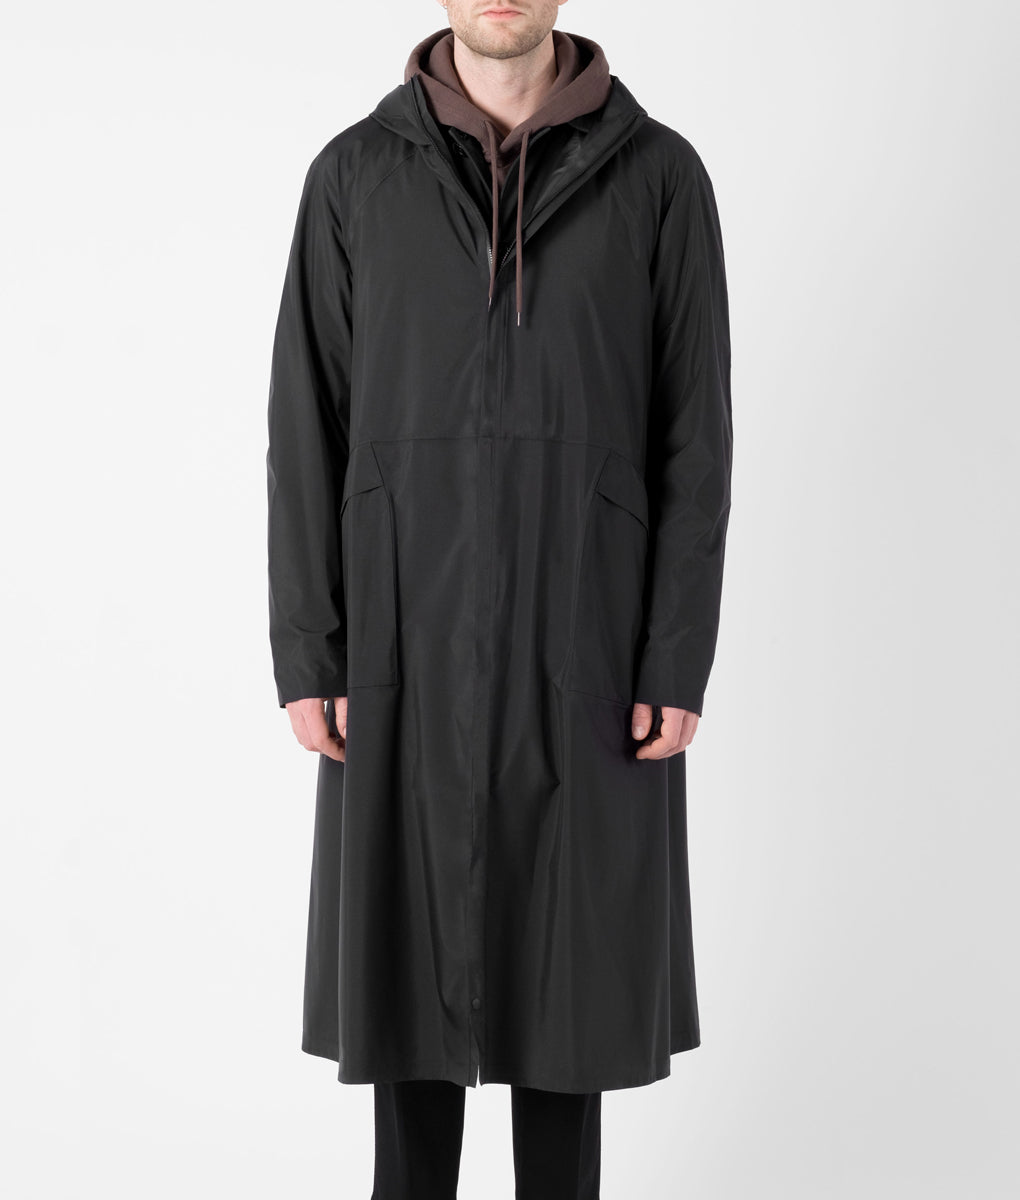 All-Commute Overcoat-9